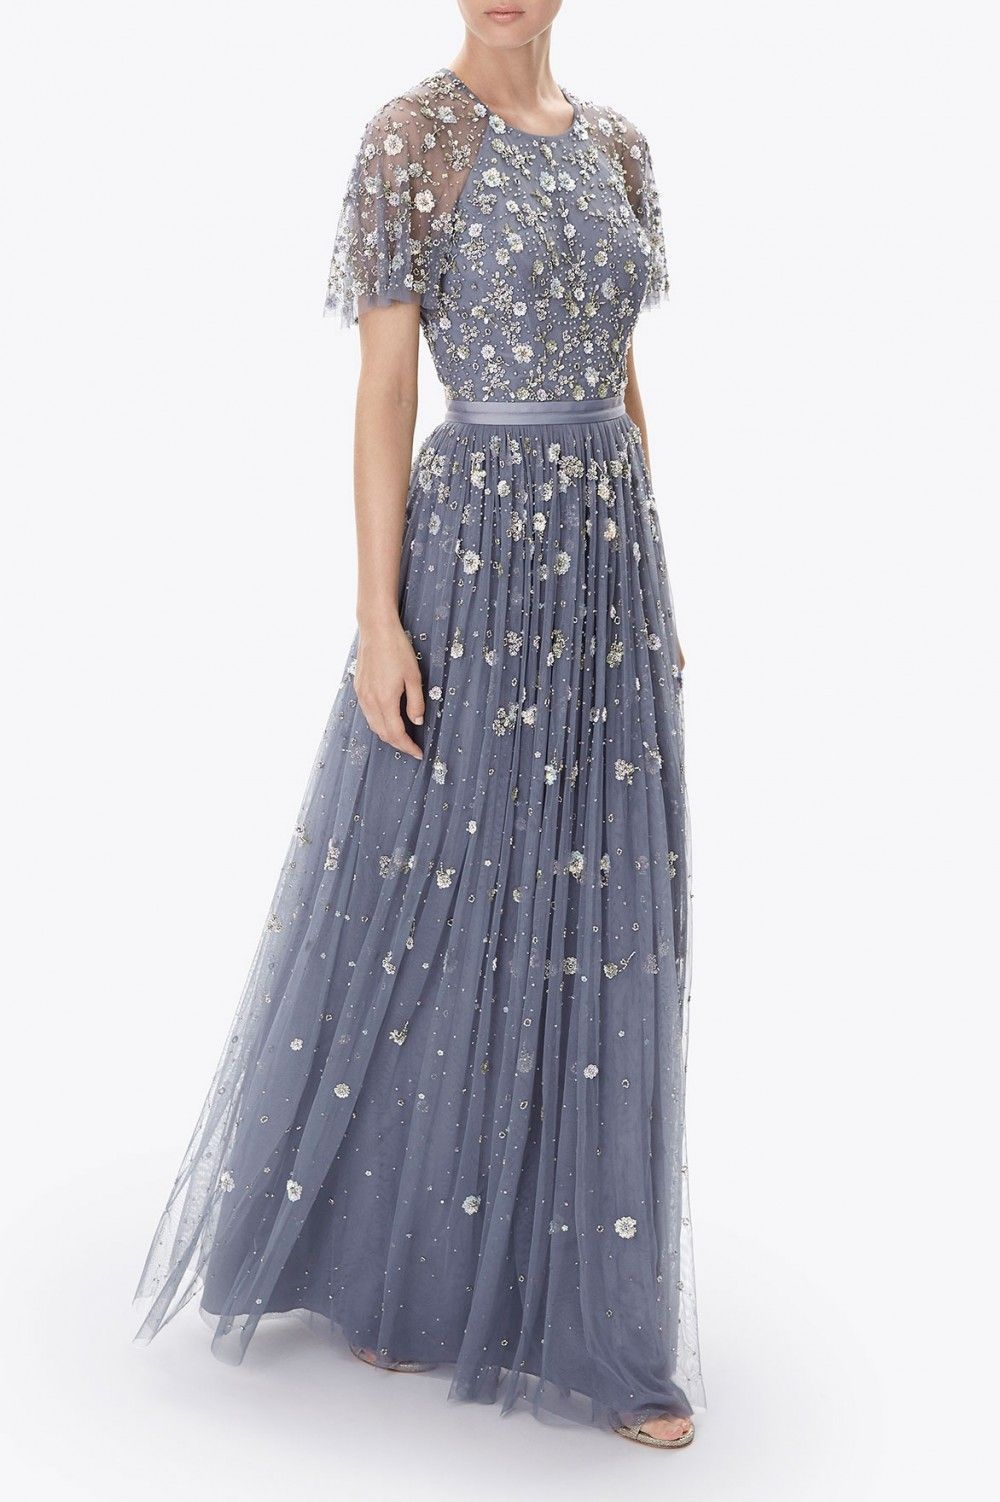 63cb5373b79 ... the backless Comet Gown features all-over embellishment of iridescent  sequins and silver cut beading. This stunning embellished tulle maxi dress  has a ...